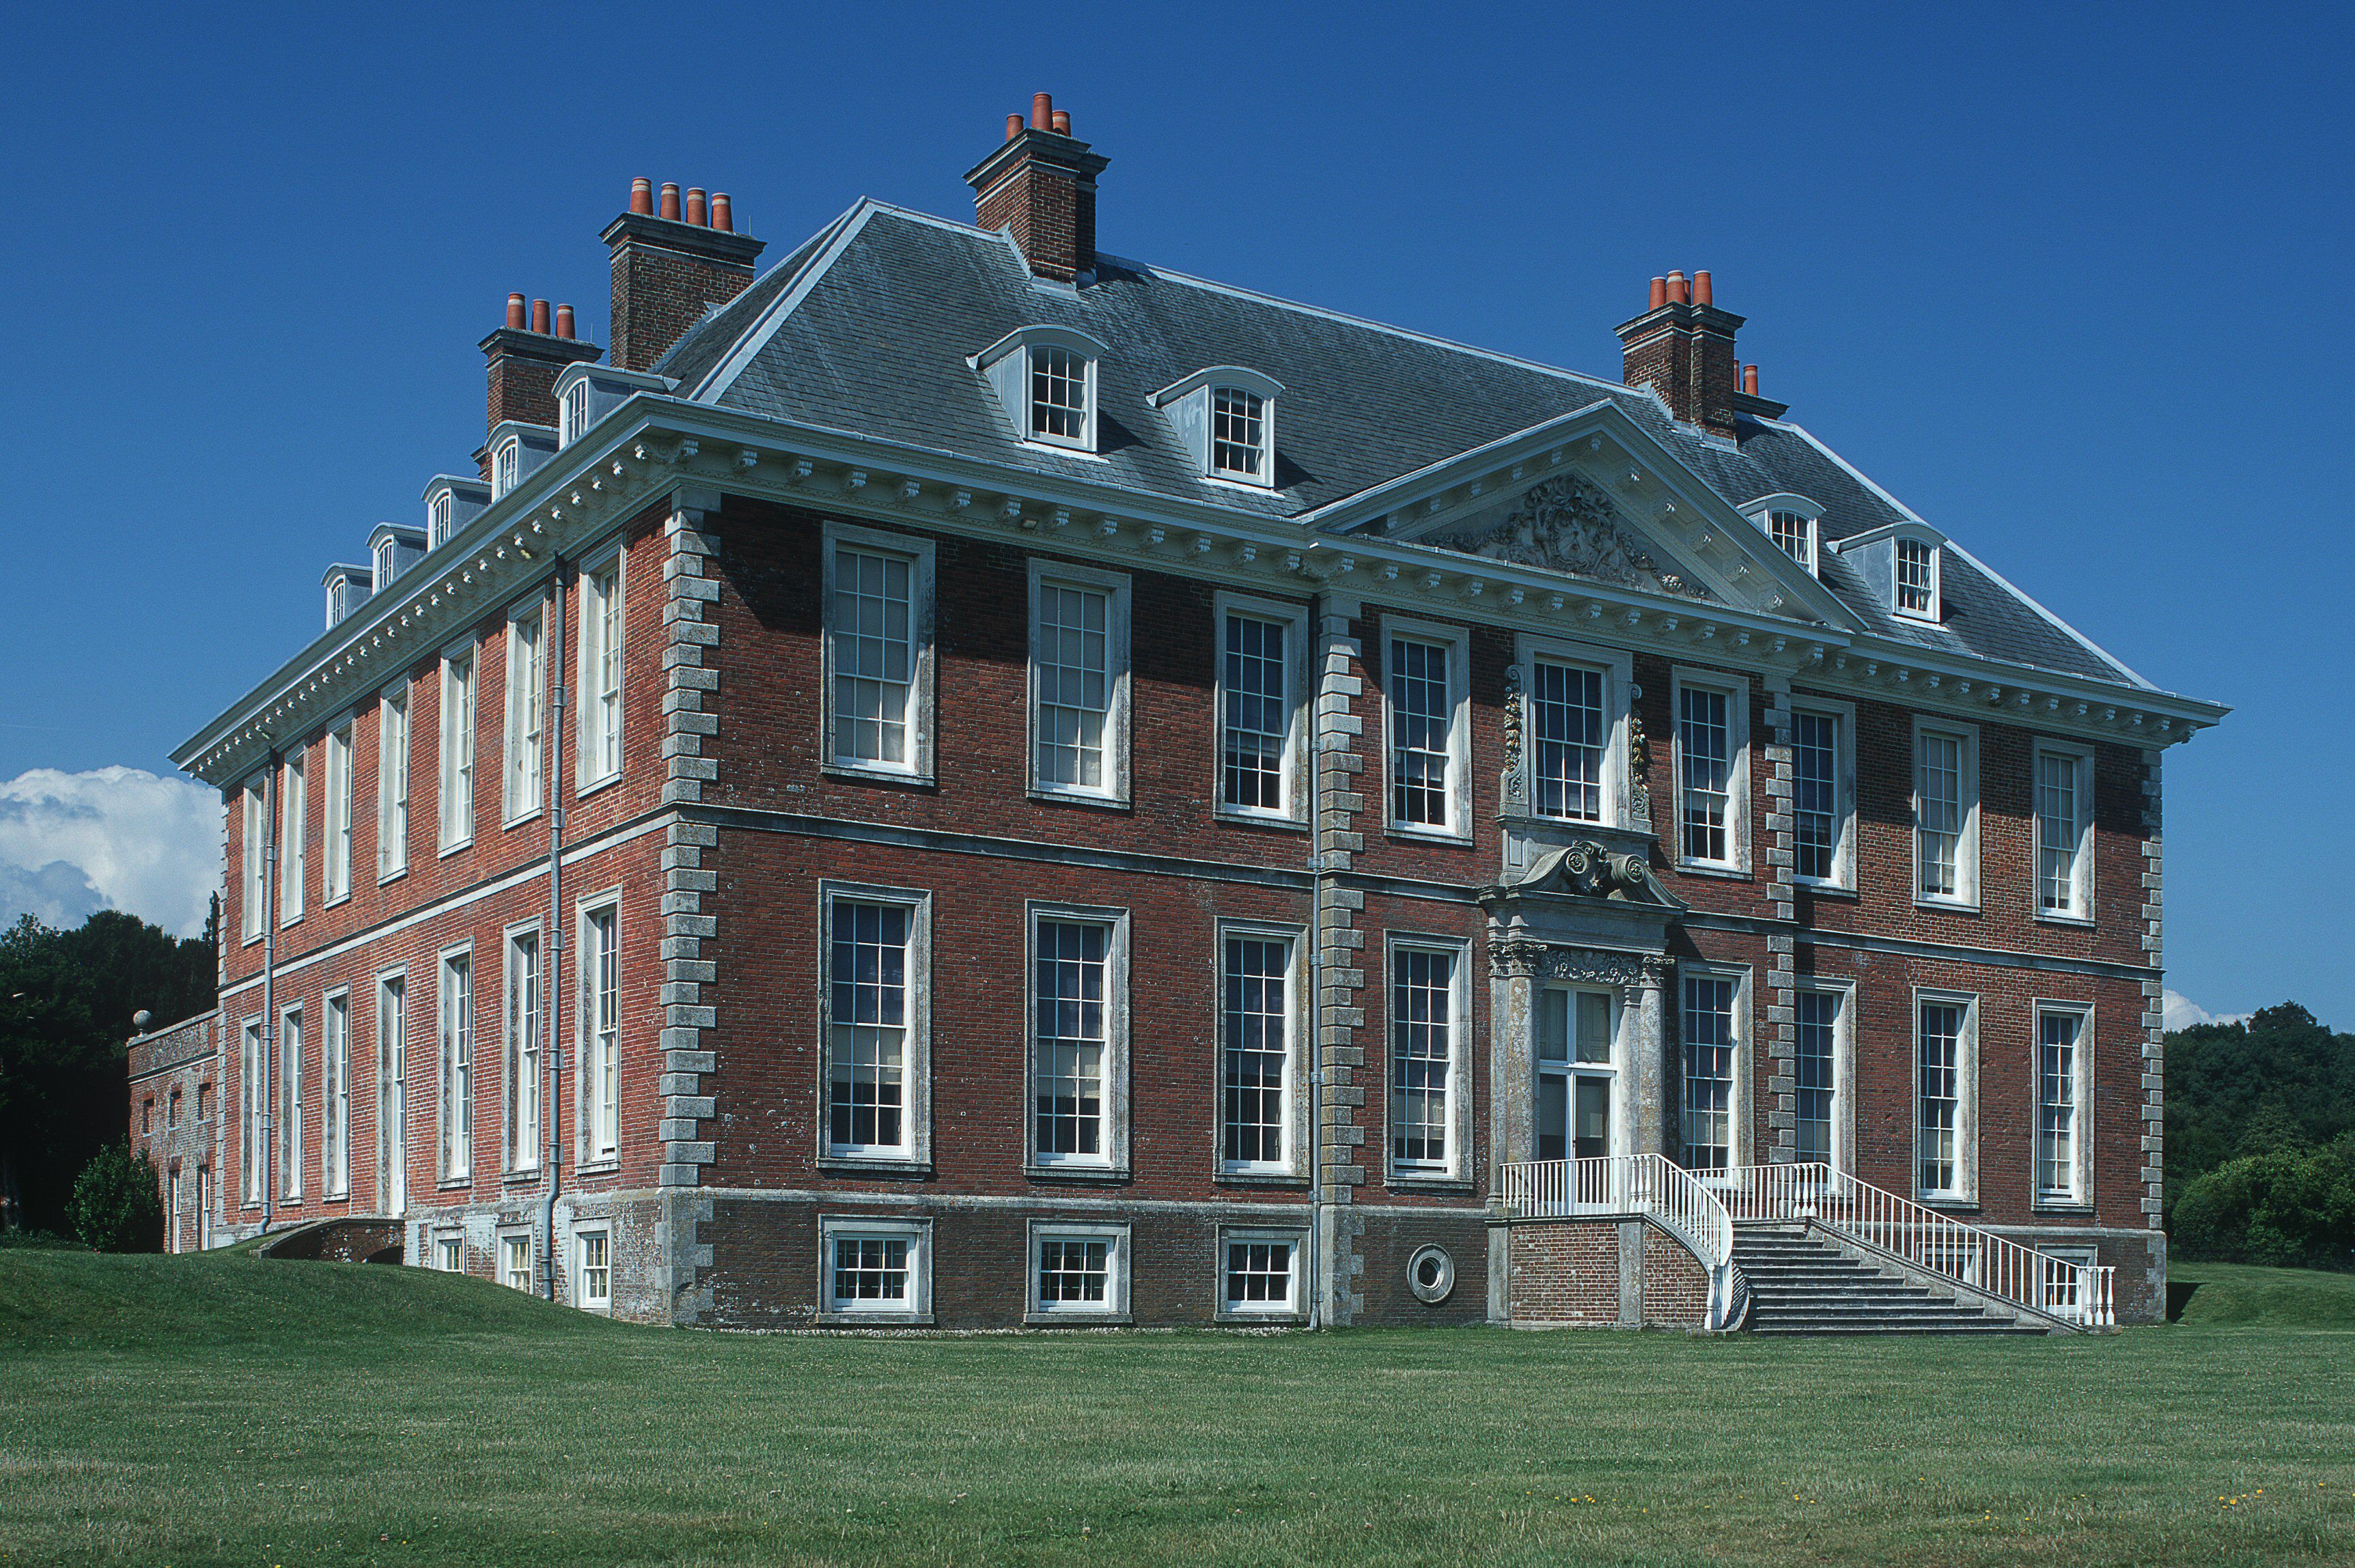 Accentuated corners or quoins on a 17th century brick mansion in England, dormers, front pediment